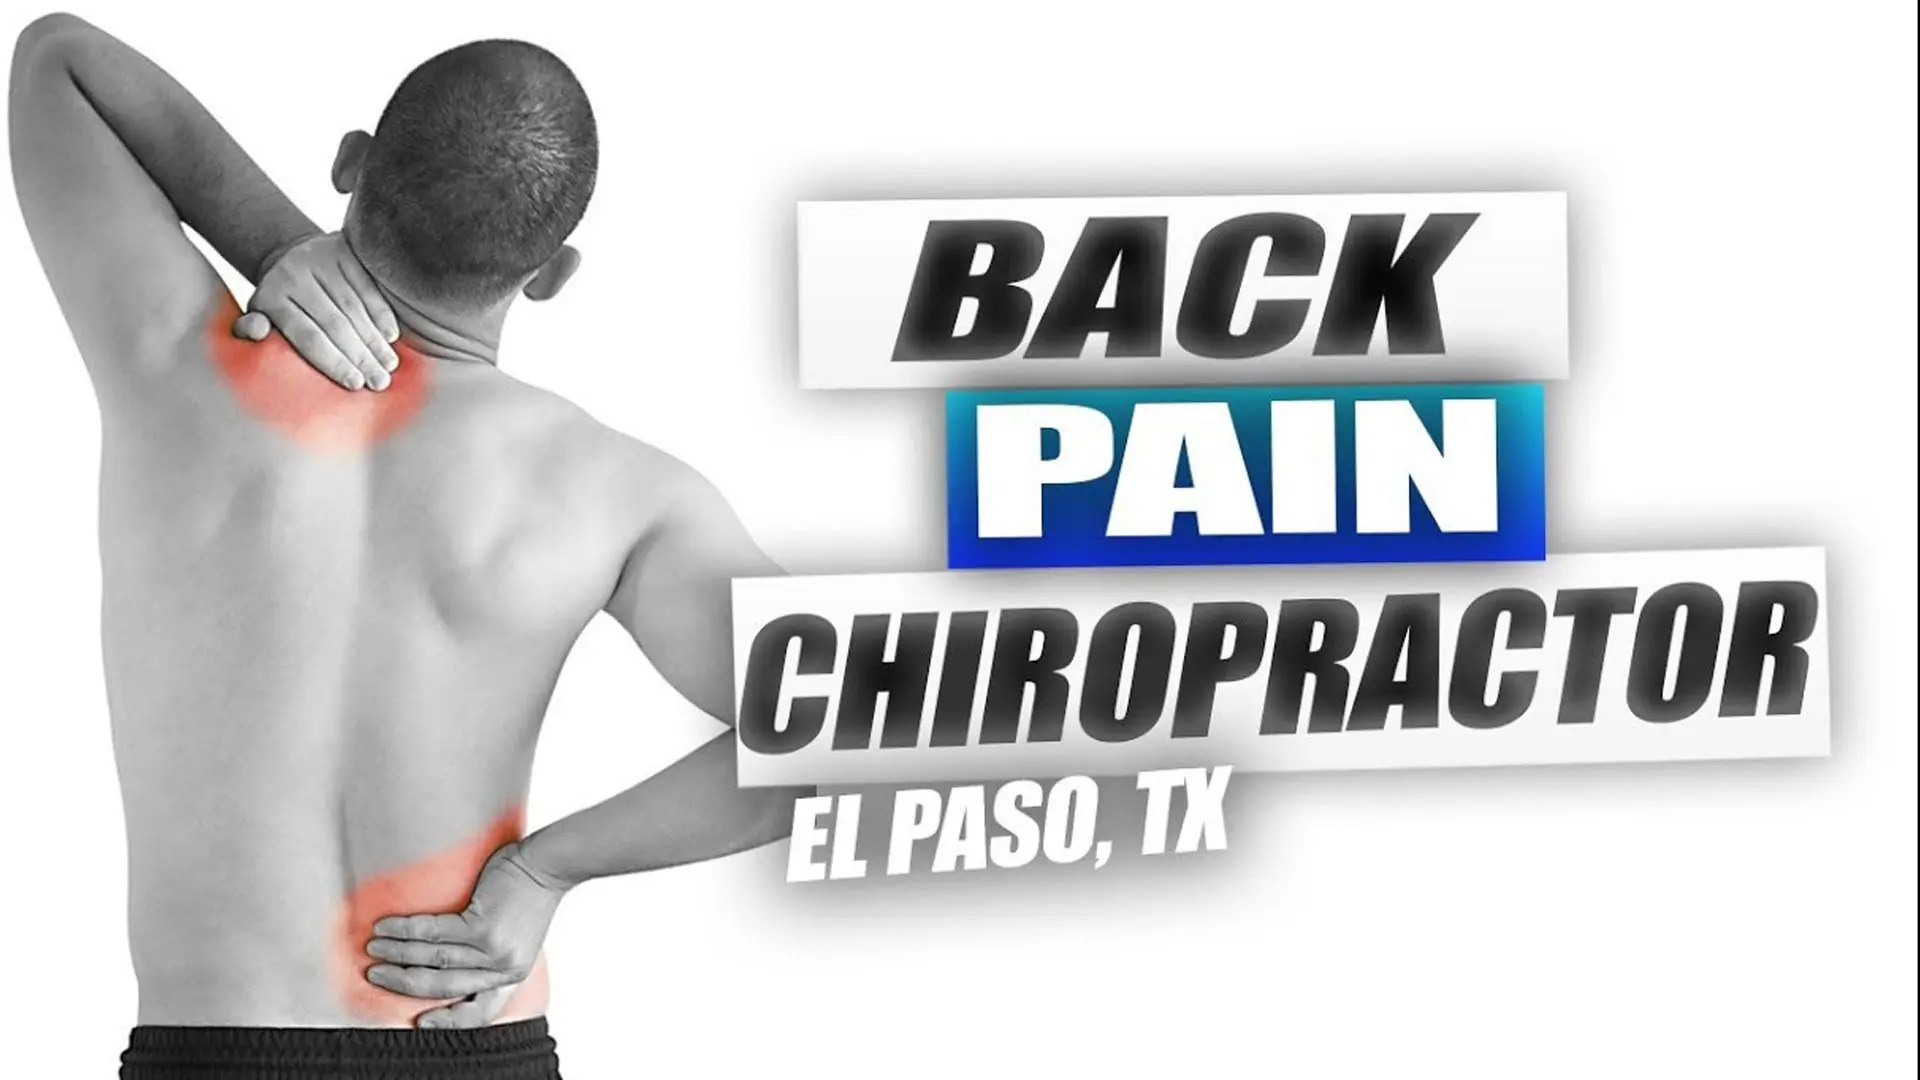 Chiropractic Care for Back Pain | El Paso, TX. | Video